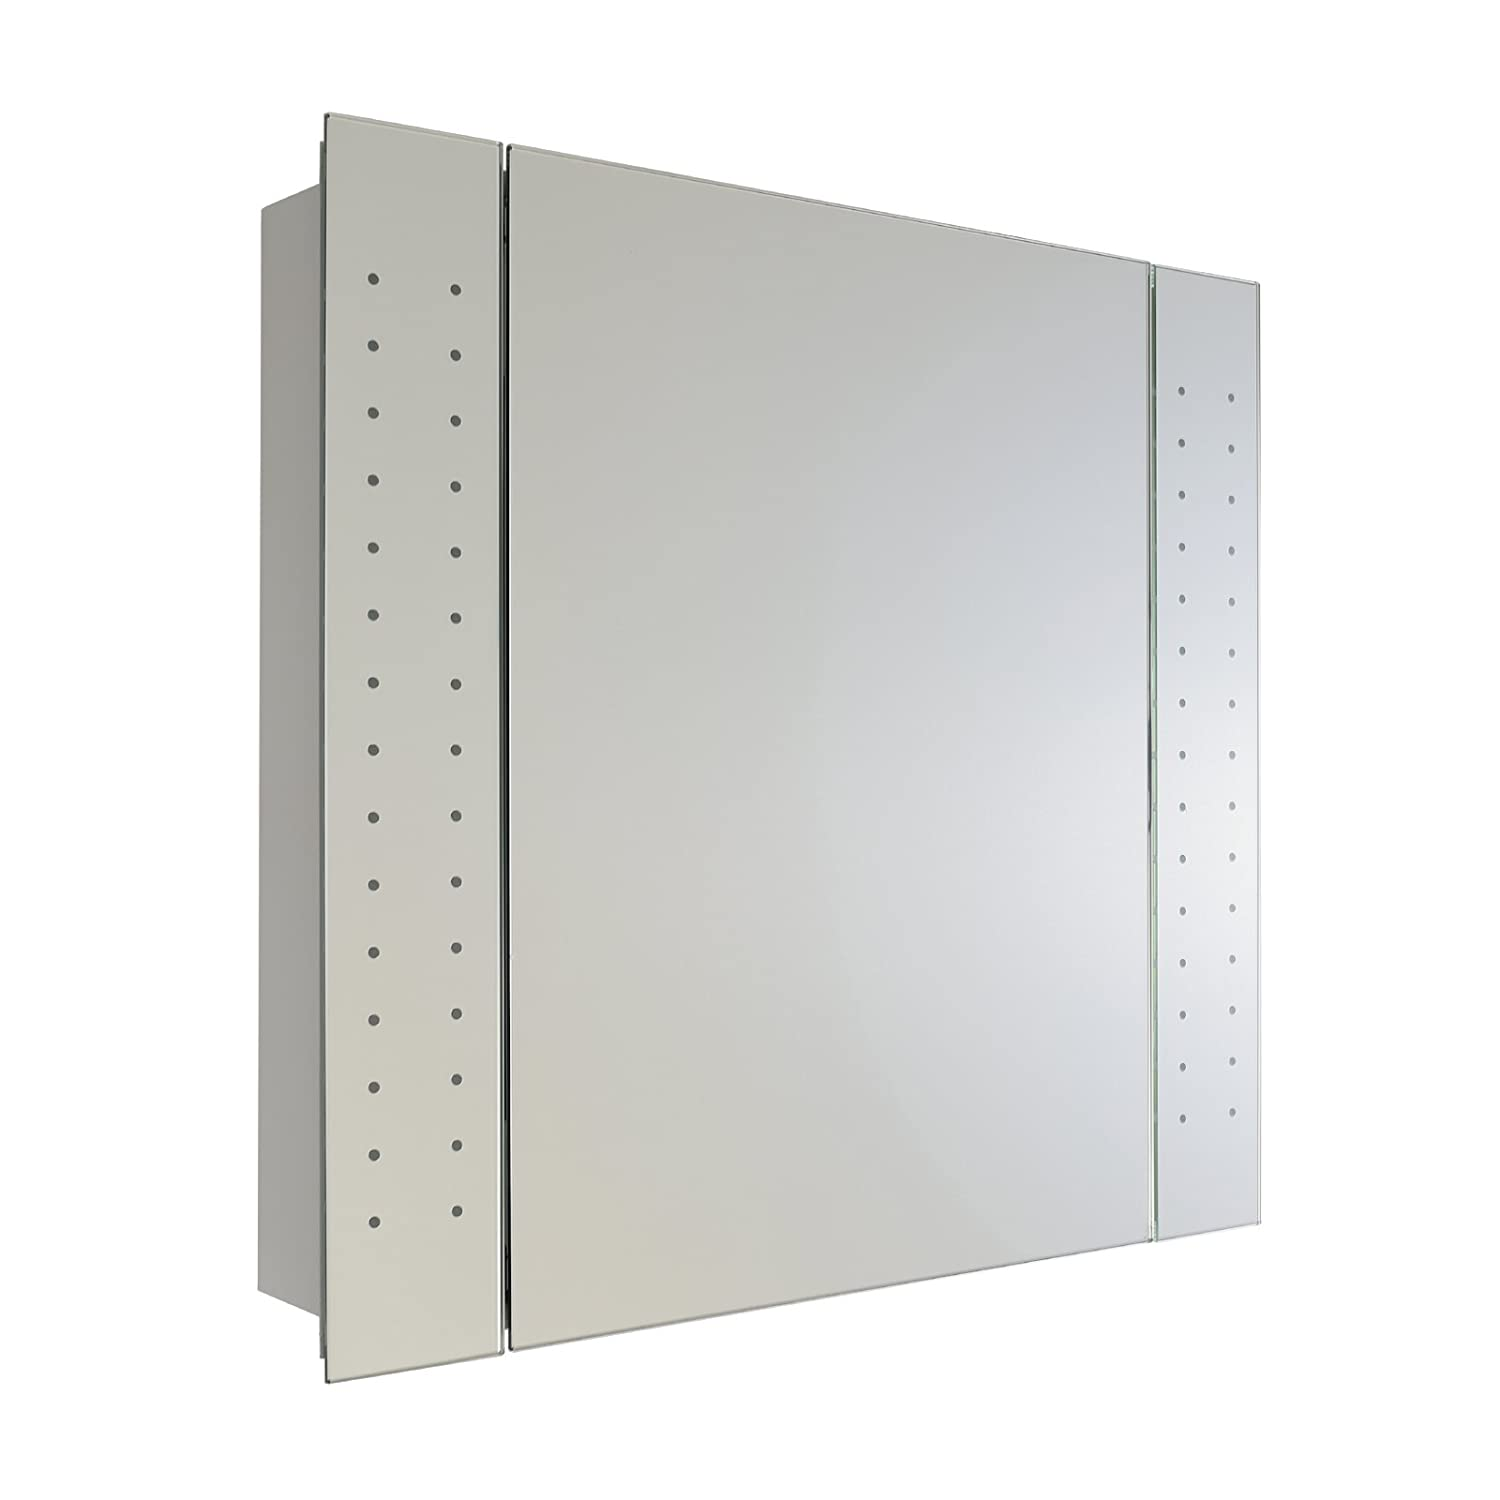 ENKI LED Wall Cabinet with Mirror for Bathroom 640 x 610 mm Galaxy